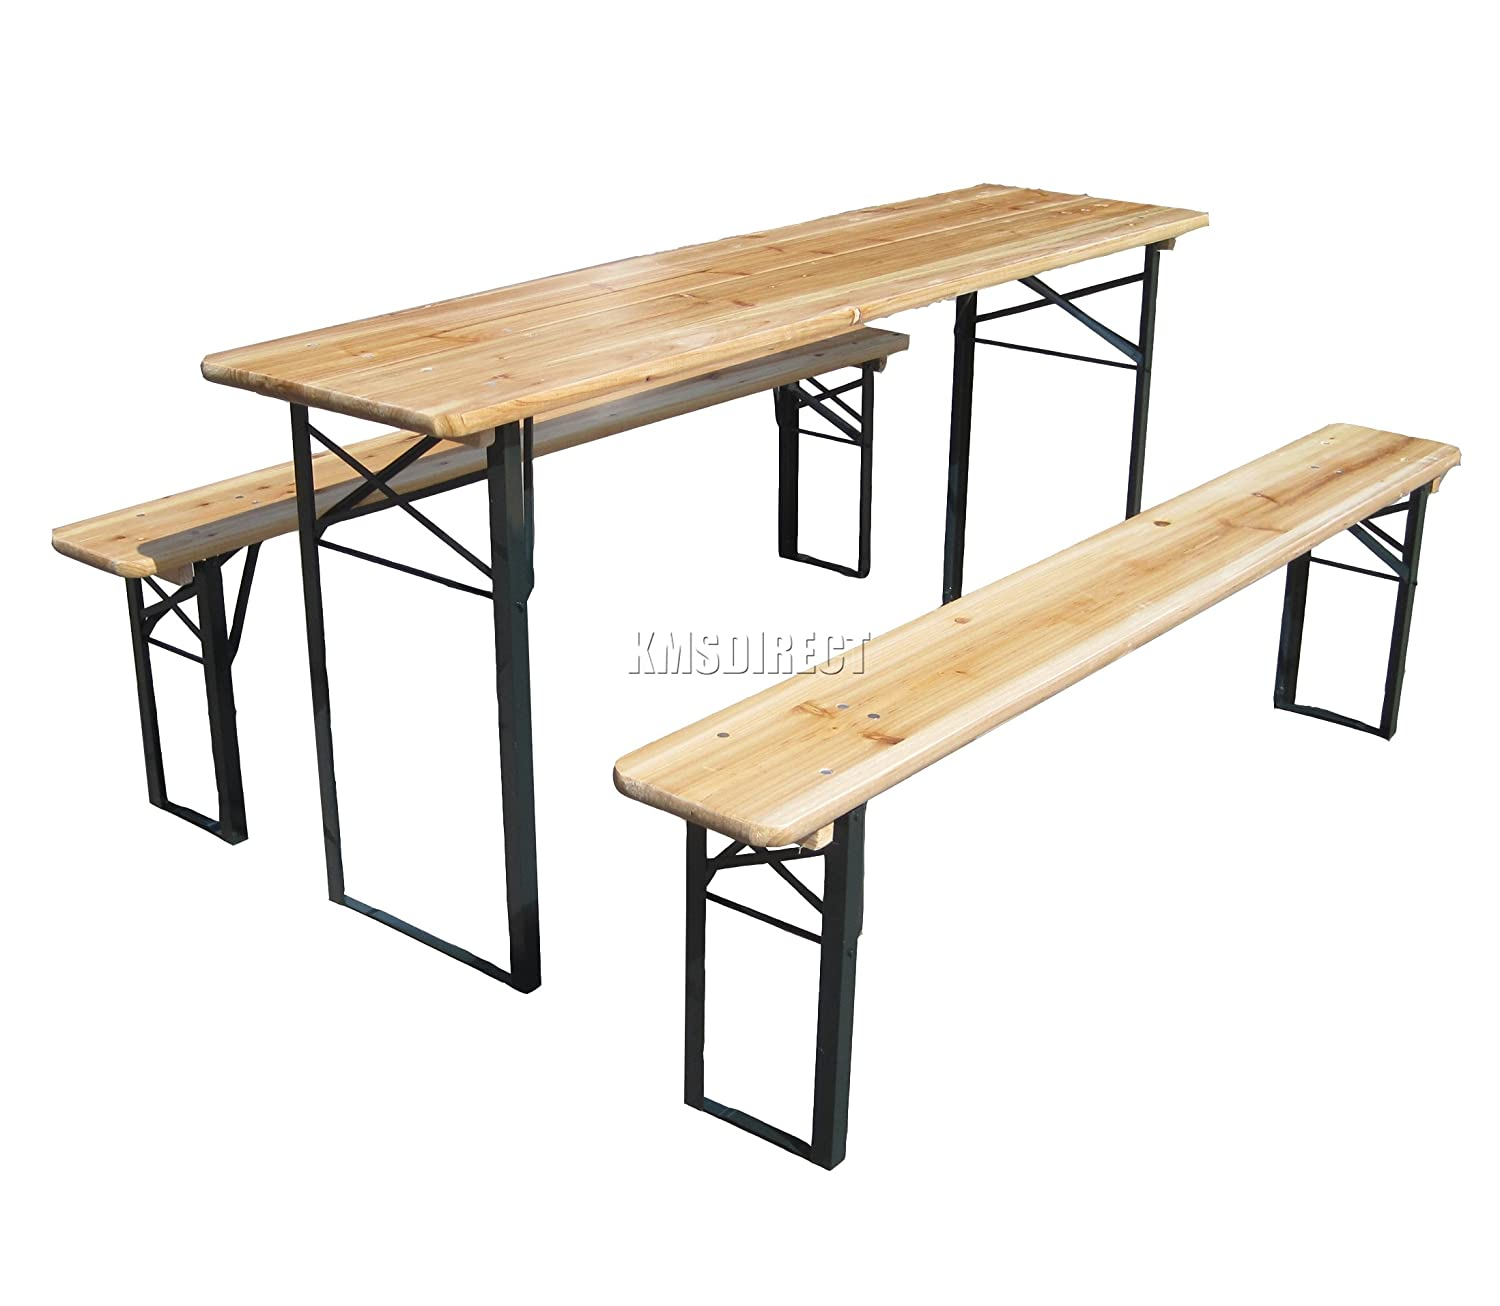 cbu convertible units room moreview bench lightbox folding picnic the withcallouts some lunch table of cafeteria